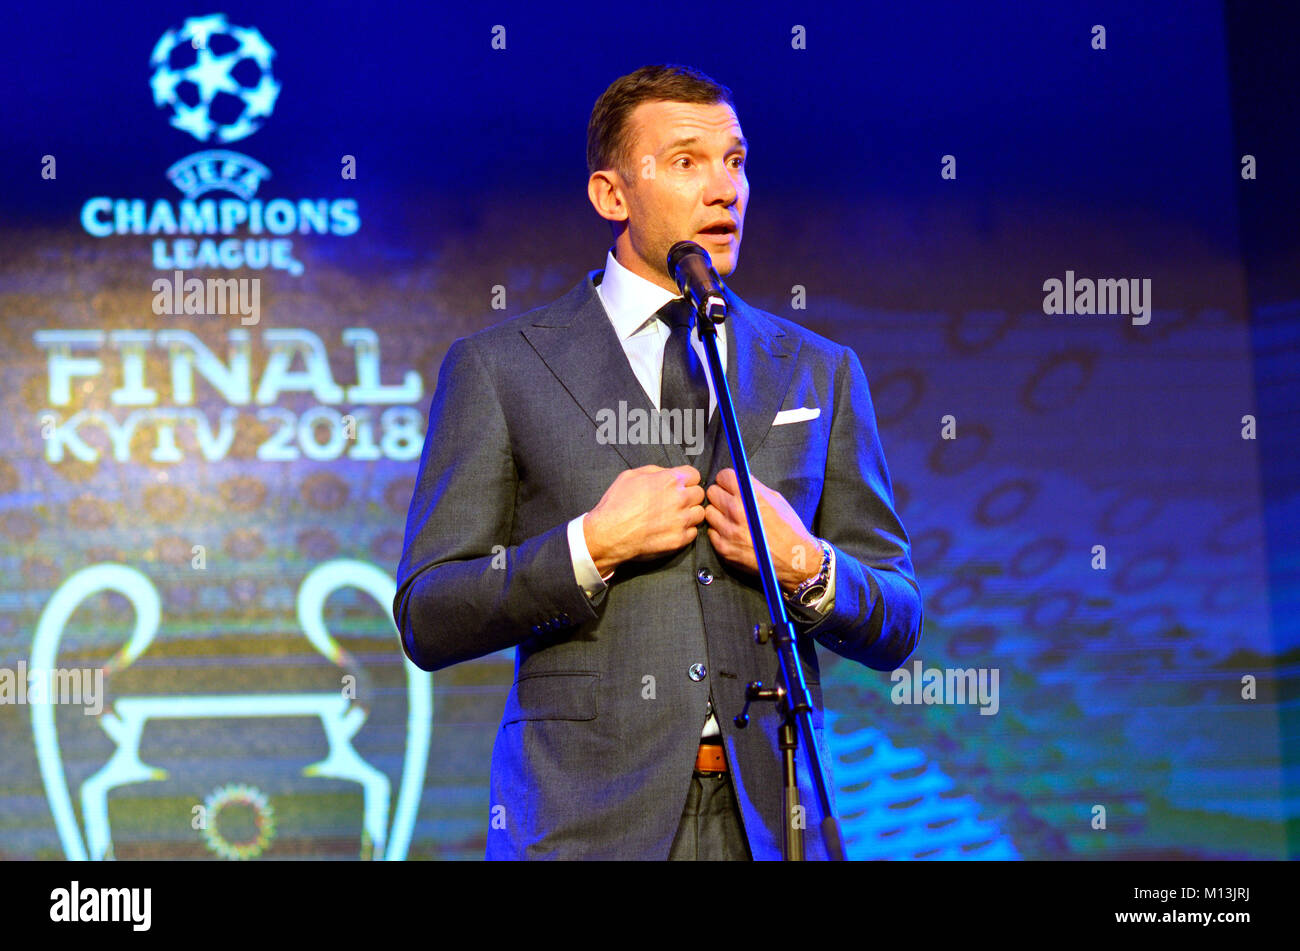 Andrey Shevchenko, football player and manager during presentation of logo and cups of UEFA Champions League final. - Stock Image